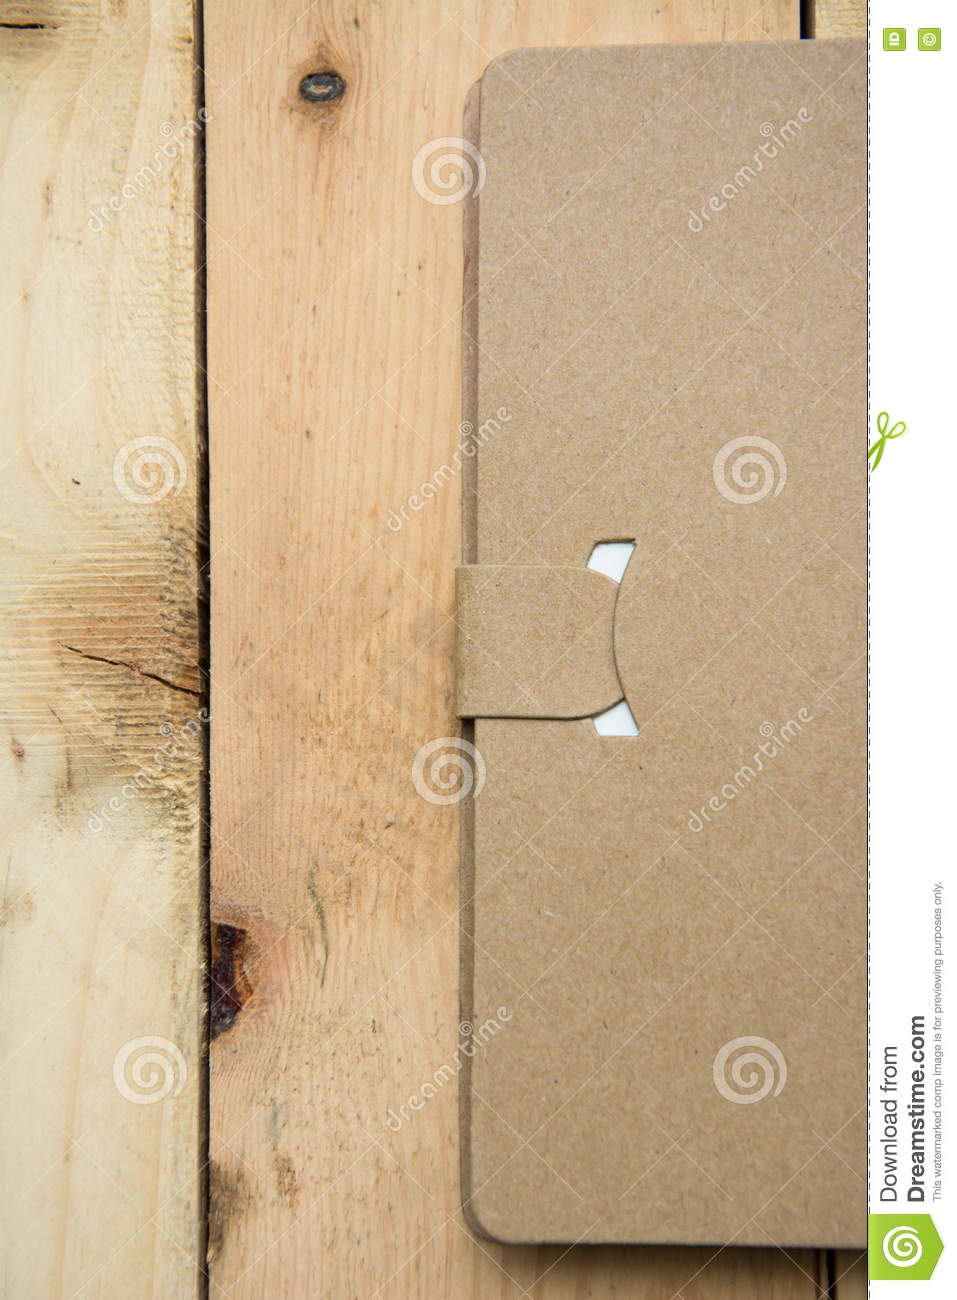 Download Notebook Paper Post It And Pen Top View On Wood Pallet Stock Illustration